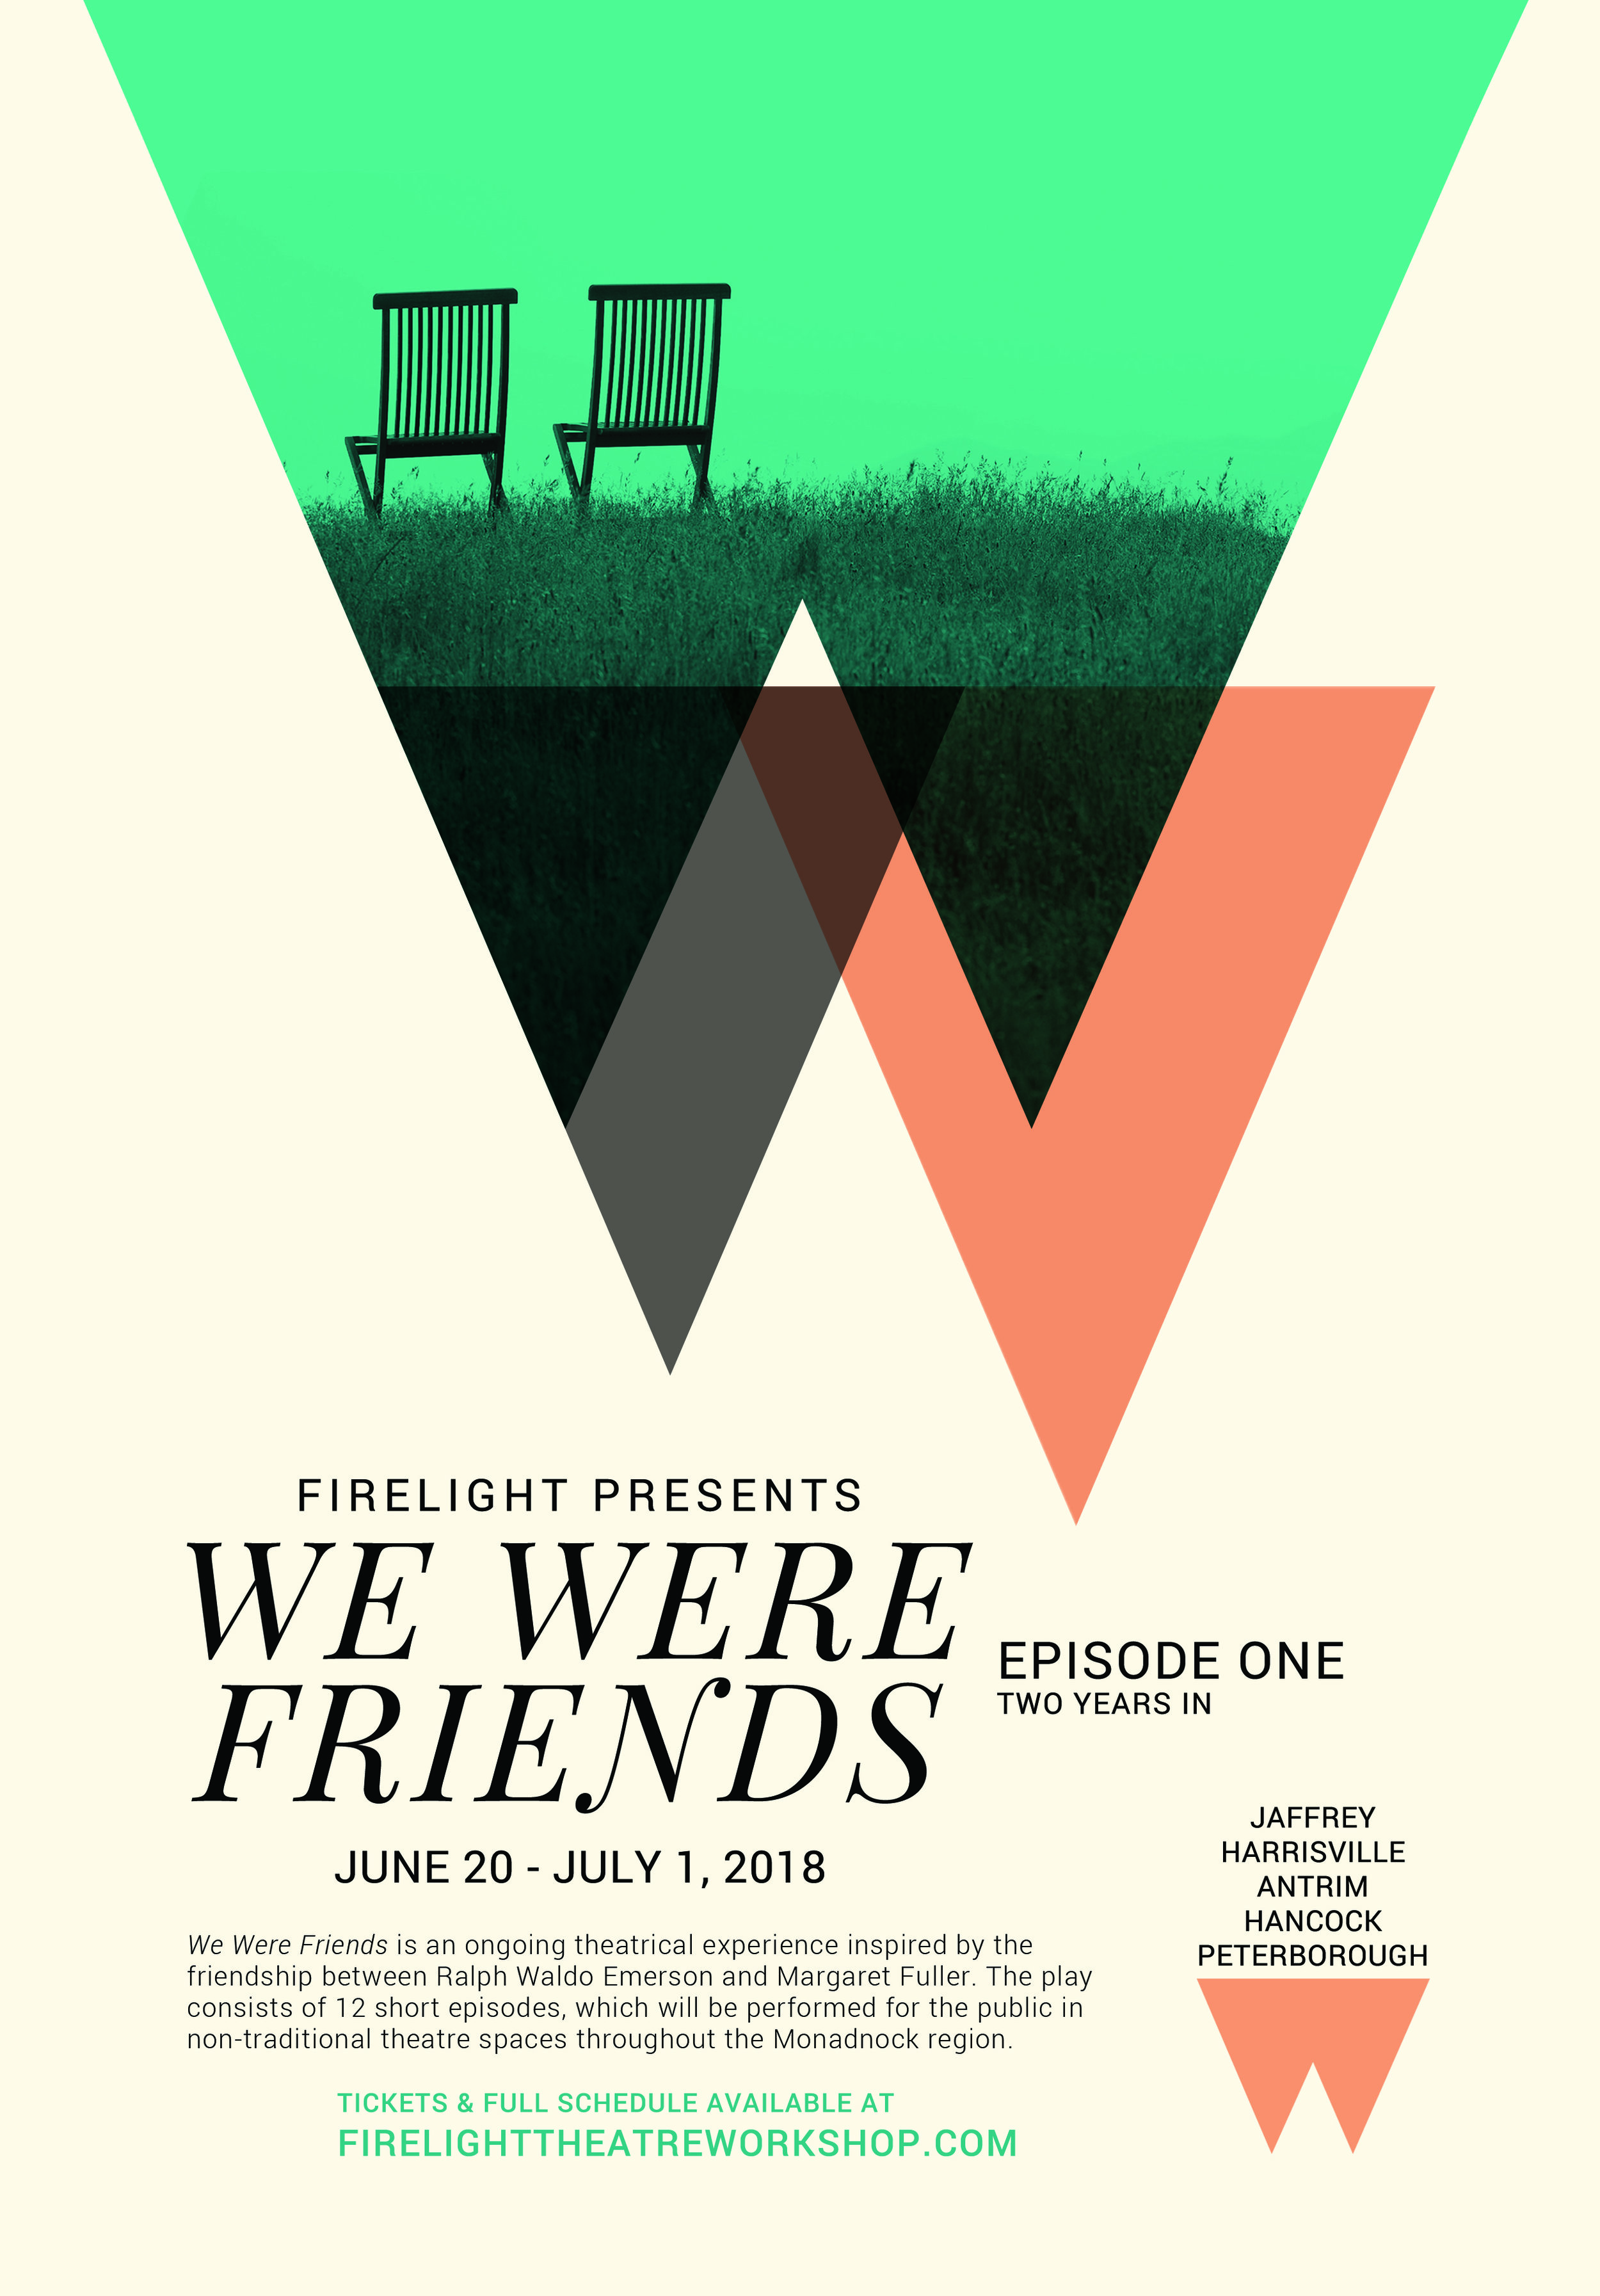 We Were Friends Poster-Version 2-FINAL.jpg